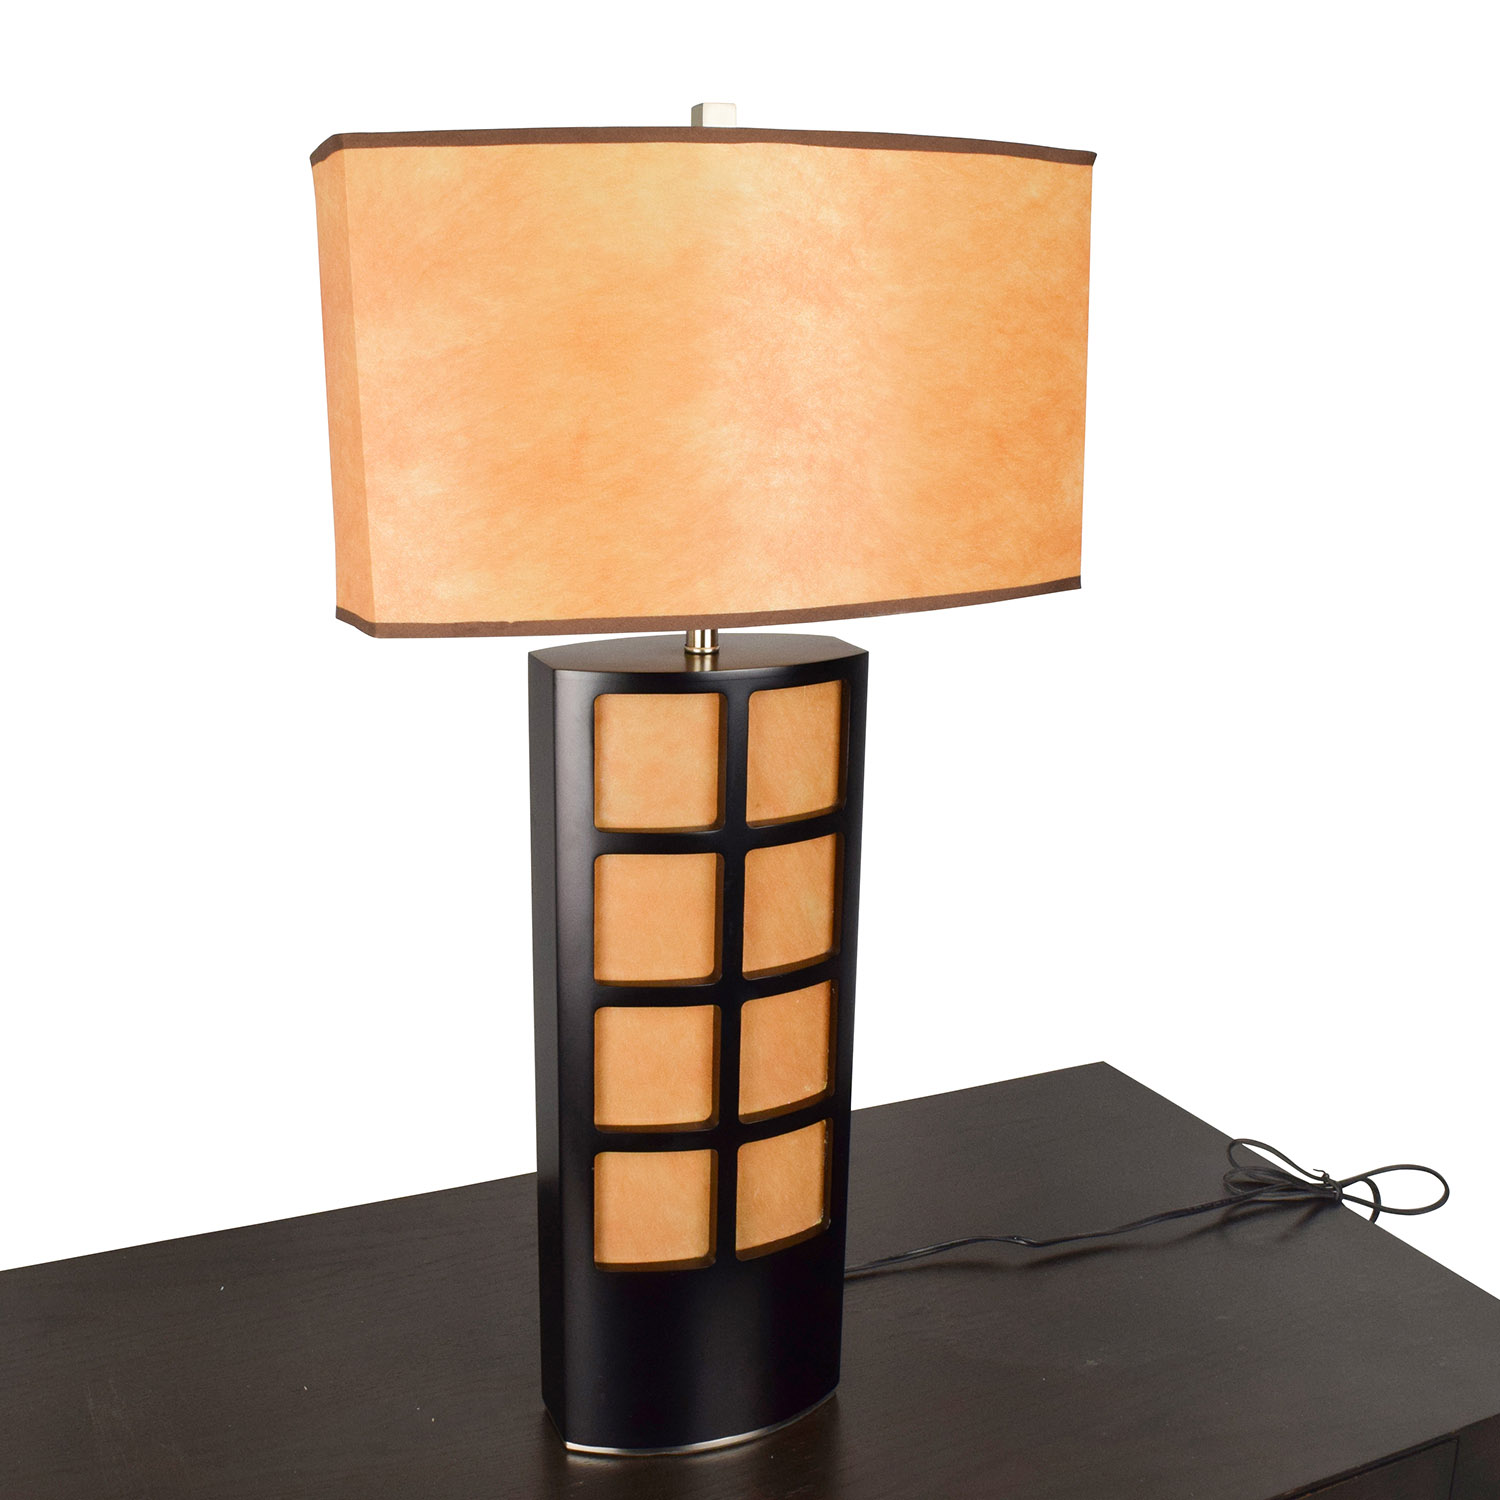 Table Lamp in Brown / Lamps